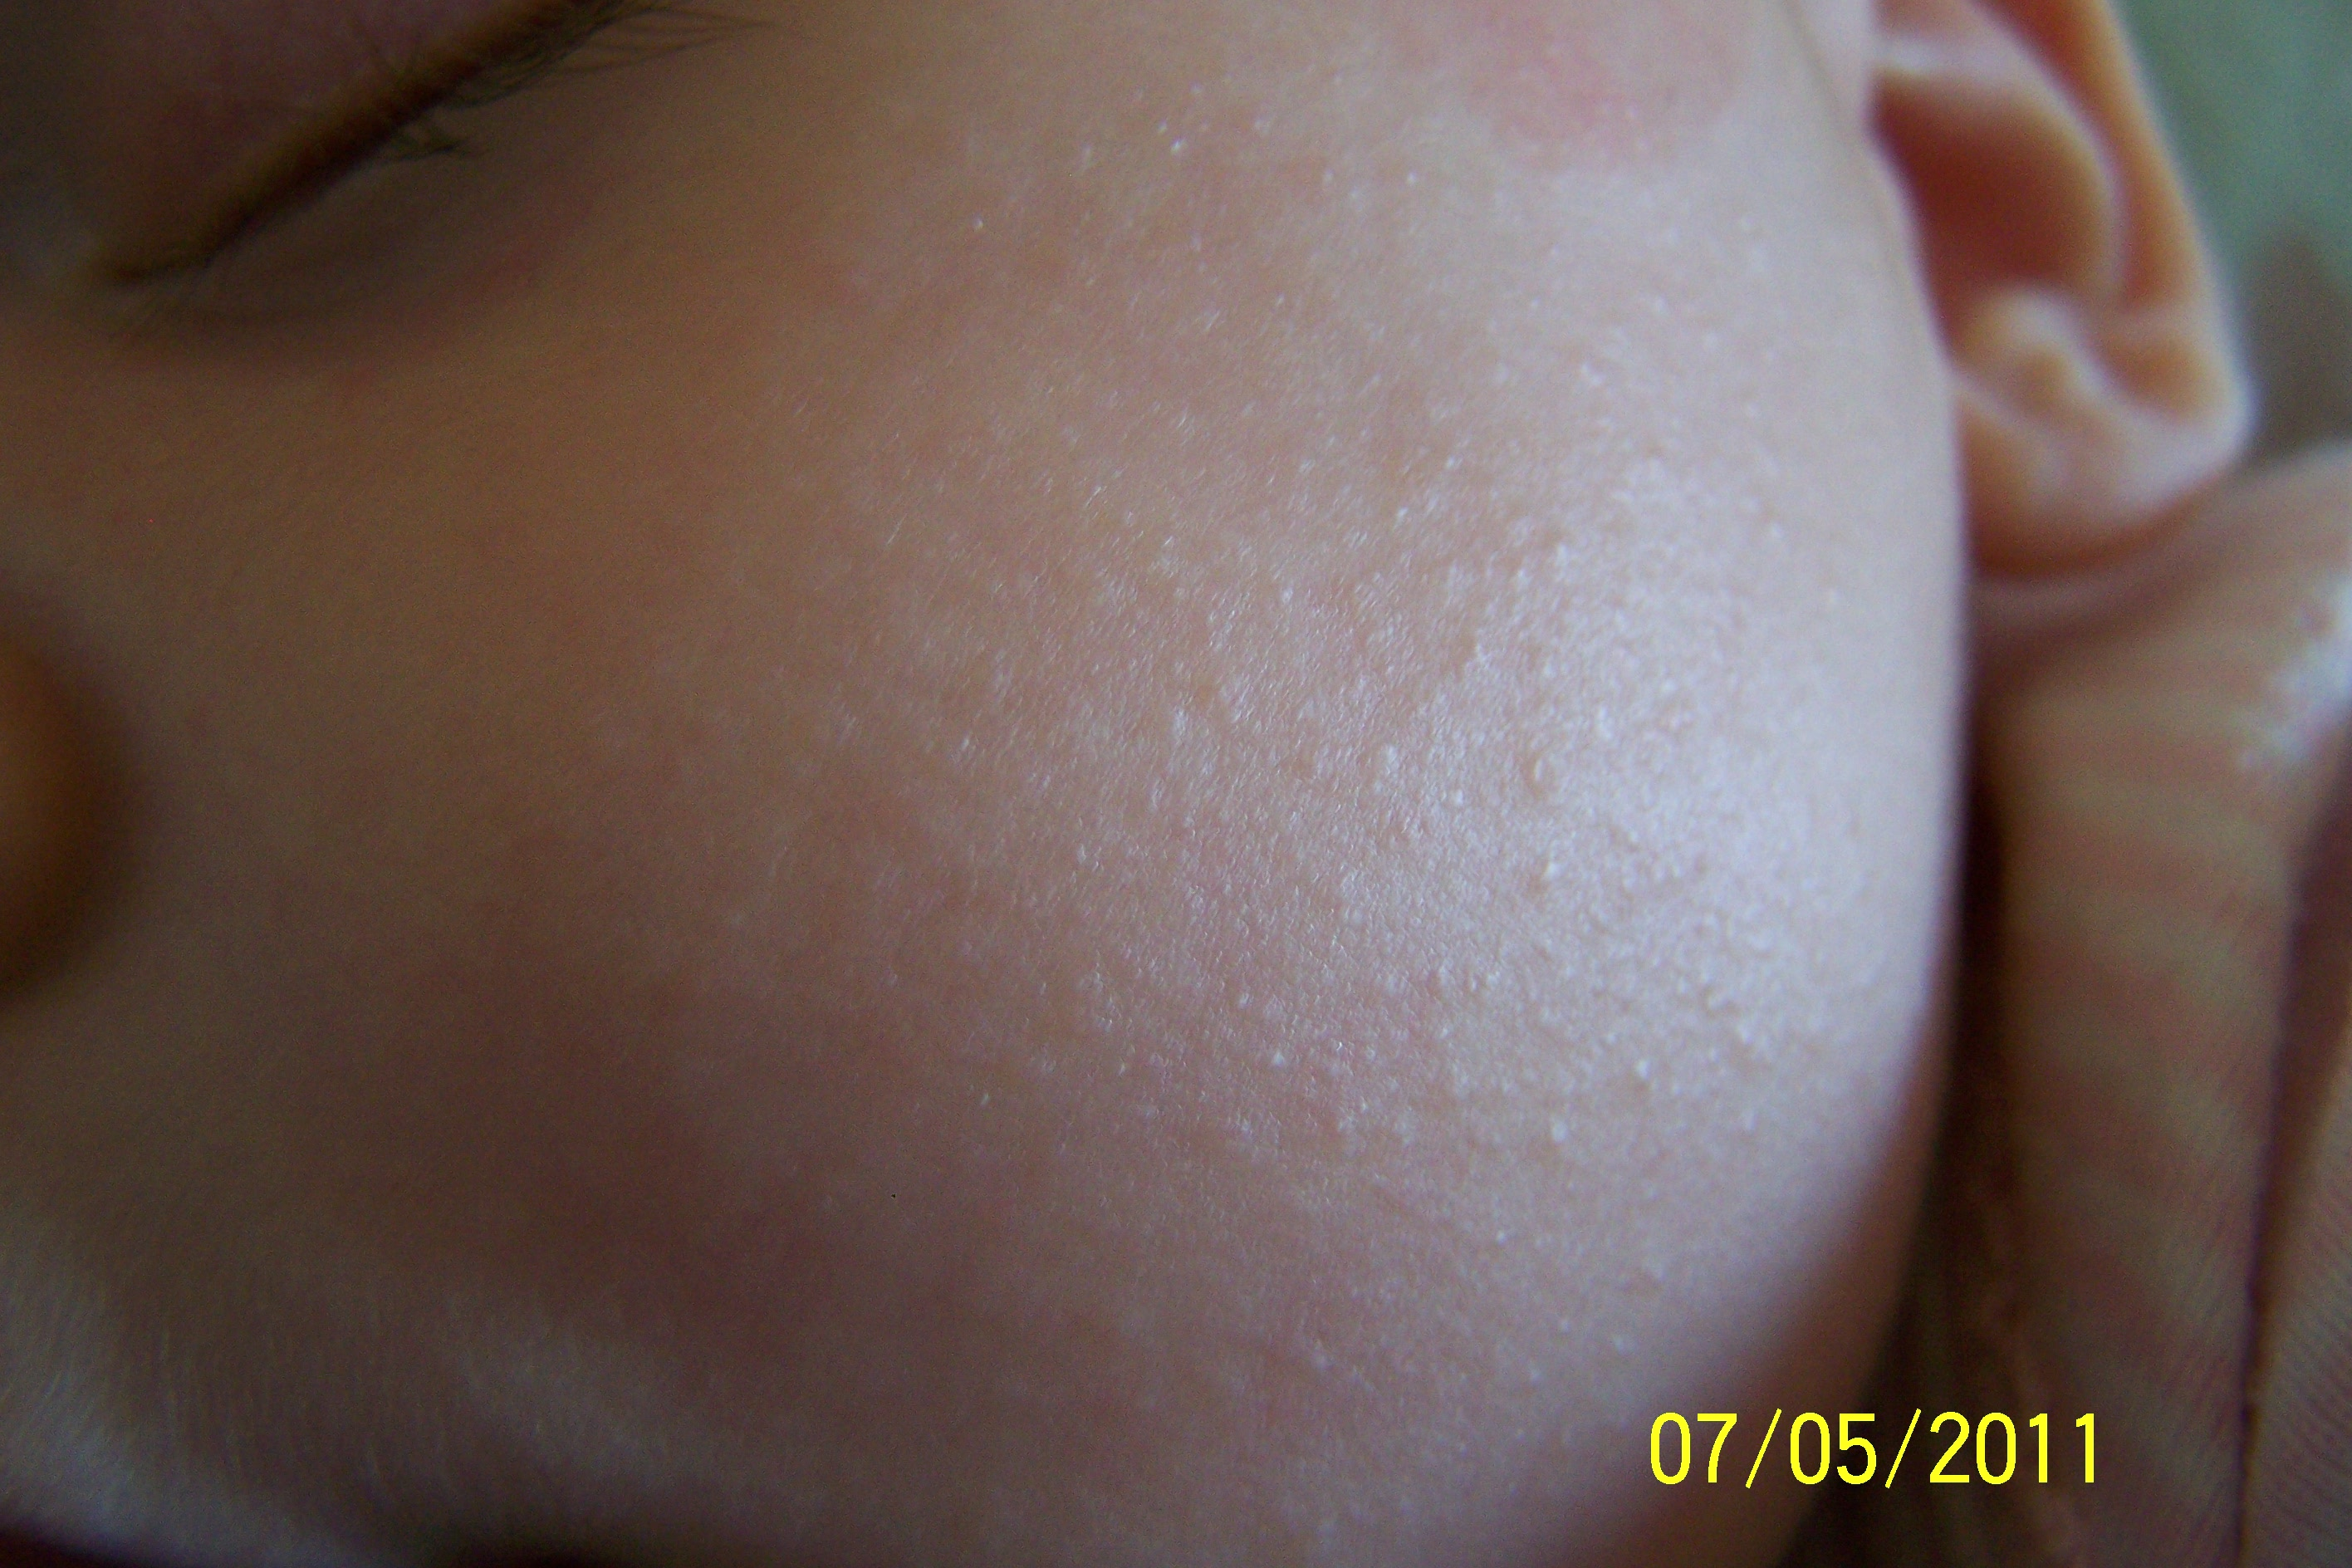 Mothering Forums > Health > Women's Health > Allergies > Tiny bumps ...